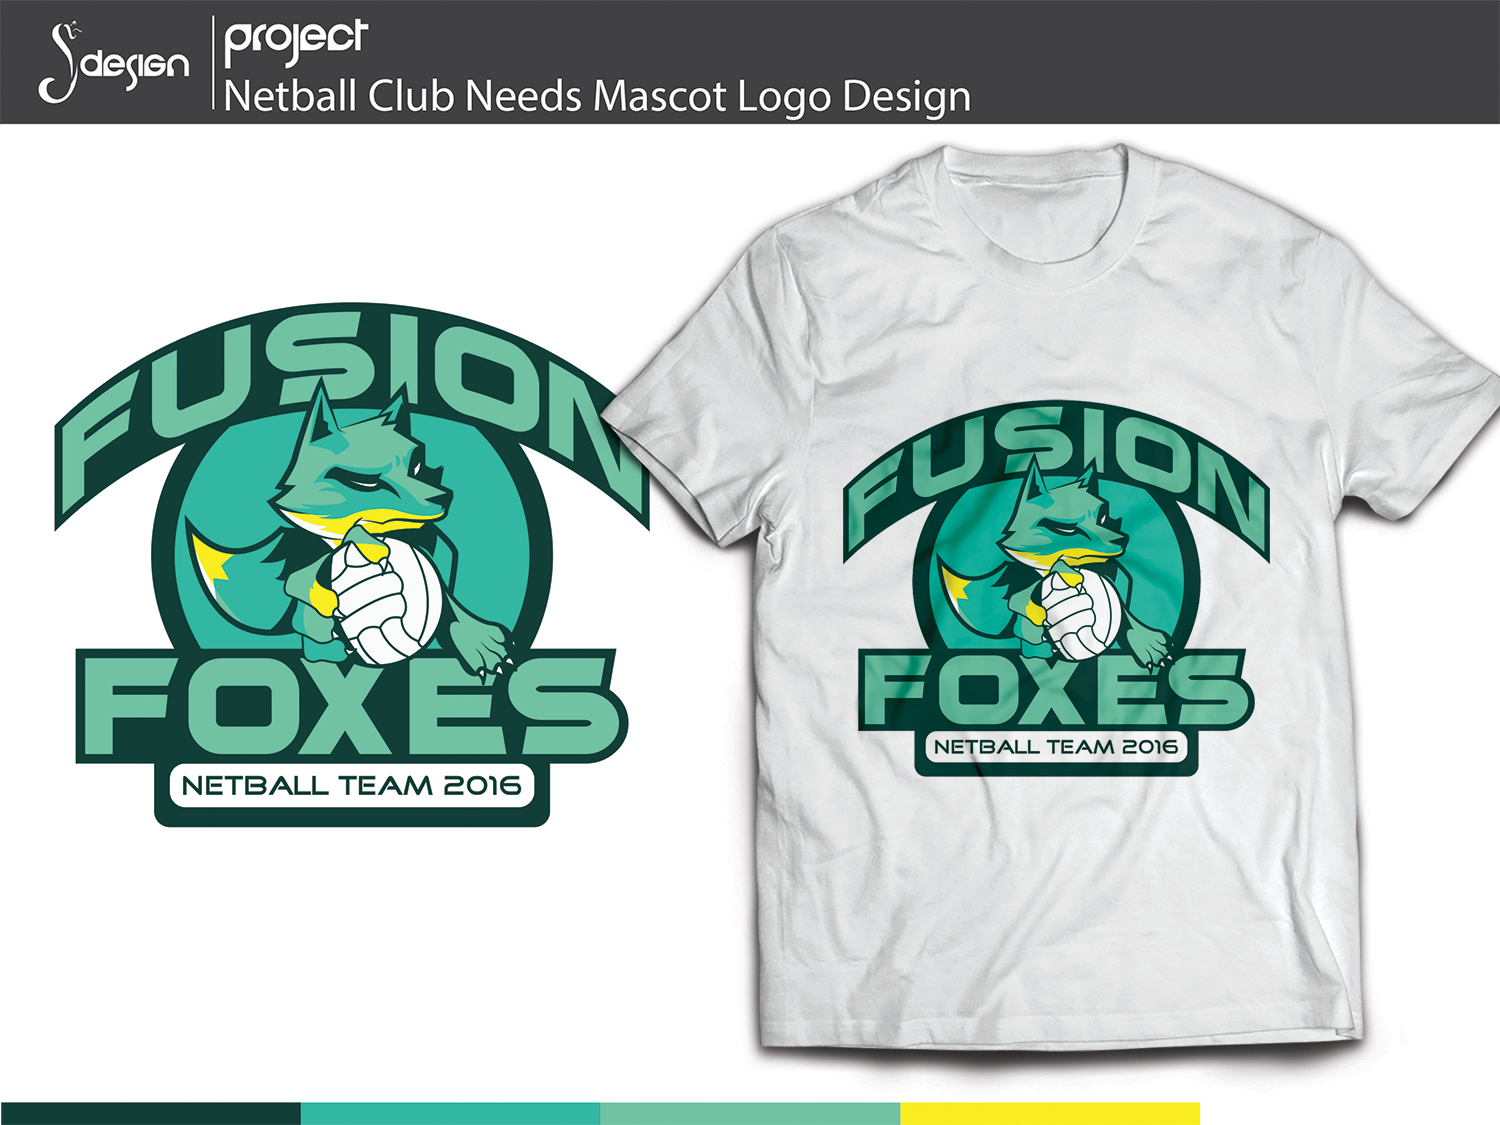 Design t shirt netball - T Shirt Design Design 10160995 Submitted To Netball Club Needs Mascot Logo